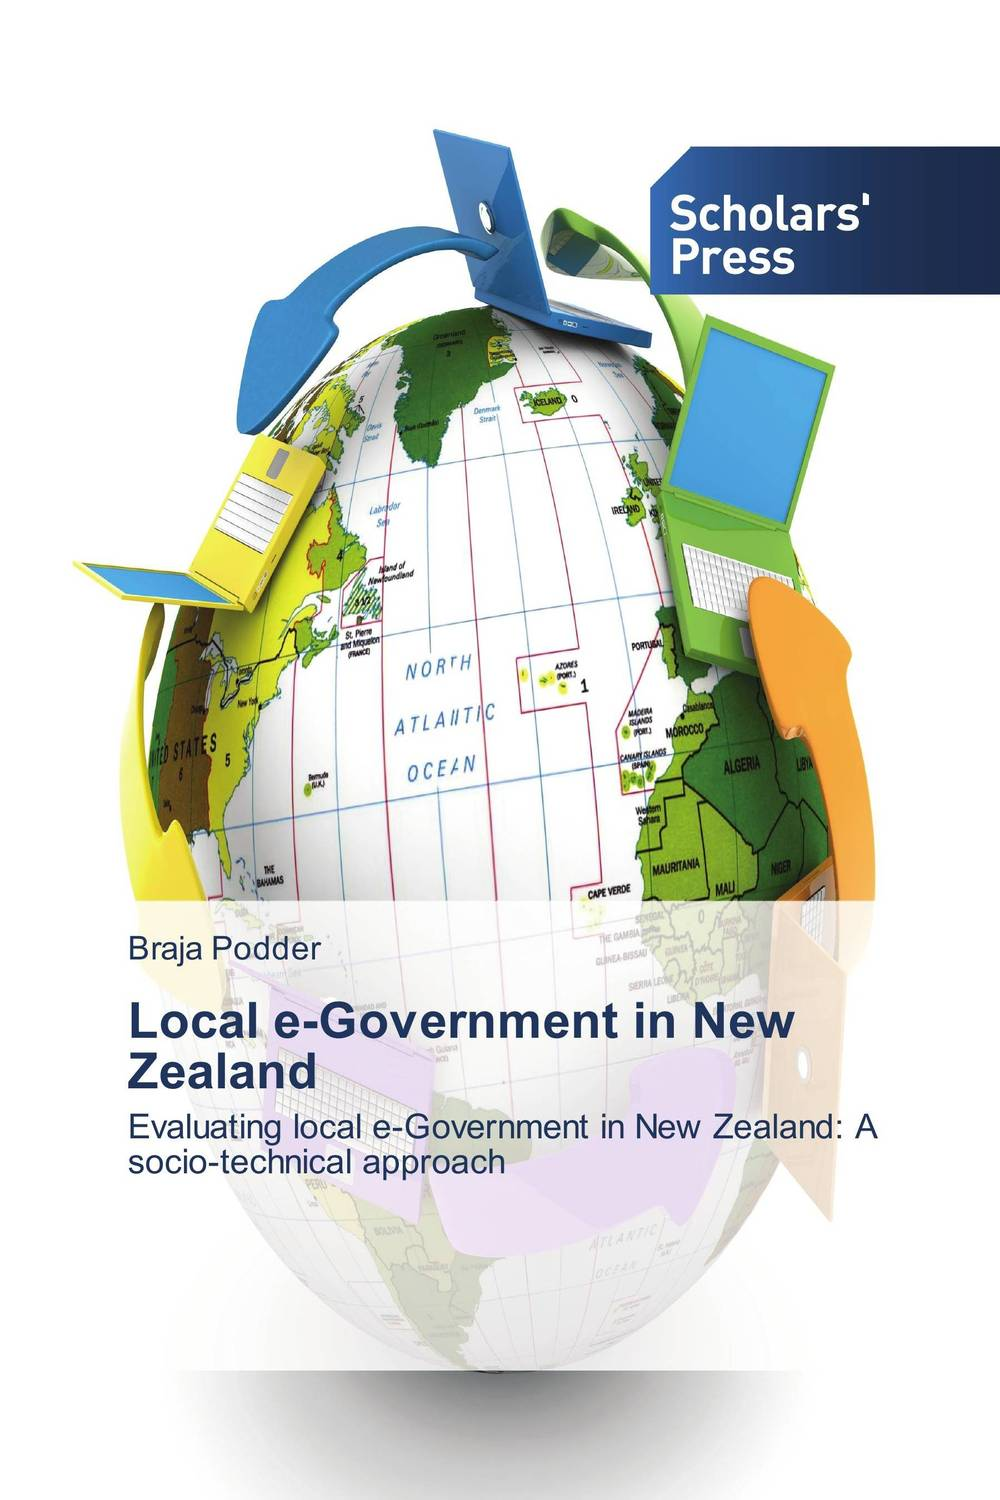 Local e-Government in New Zealand huong phan reforming local government in vietnam